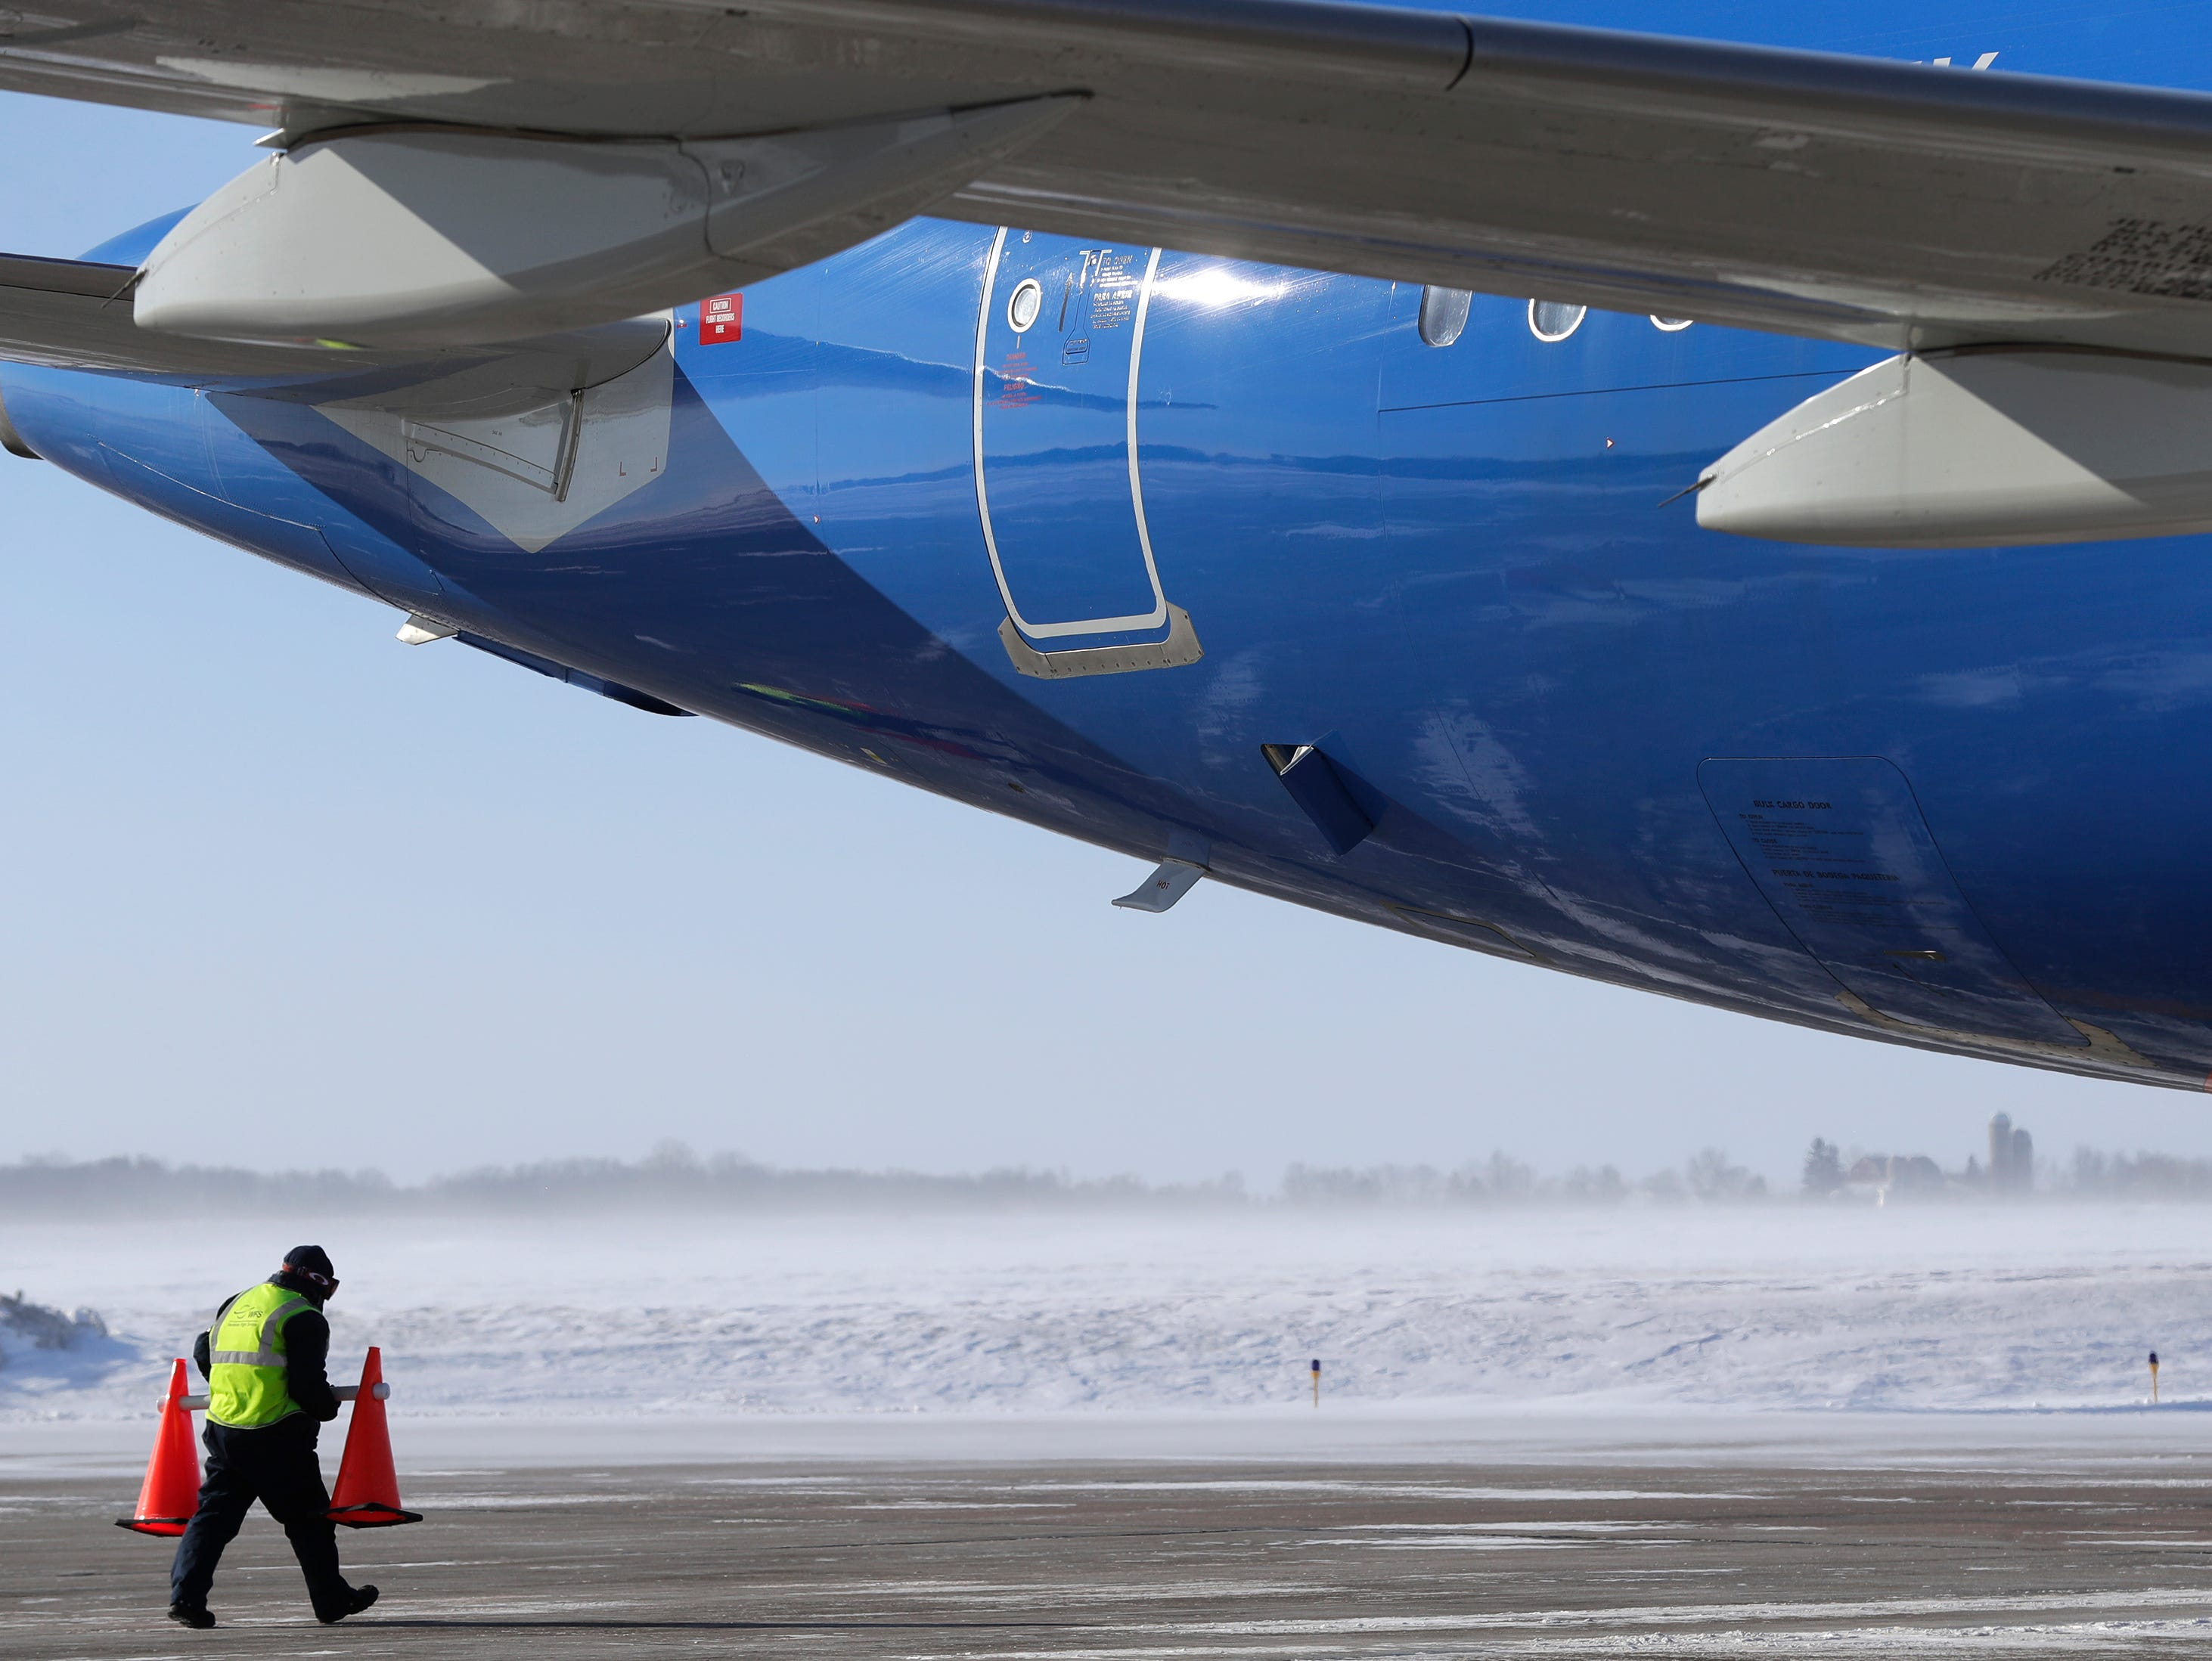 A Worldwide Flight Services employee braves frigid temperatures and high winds as he uses cones to mark the perimeter of an arriving Allegiant Airlines jet Wednesday, January 30, 2019, at the Appleton International Airport in Greenville, Wis. 